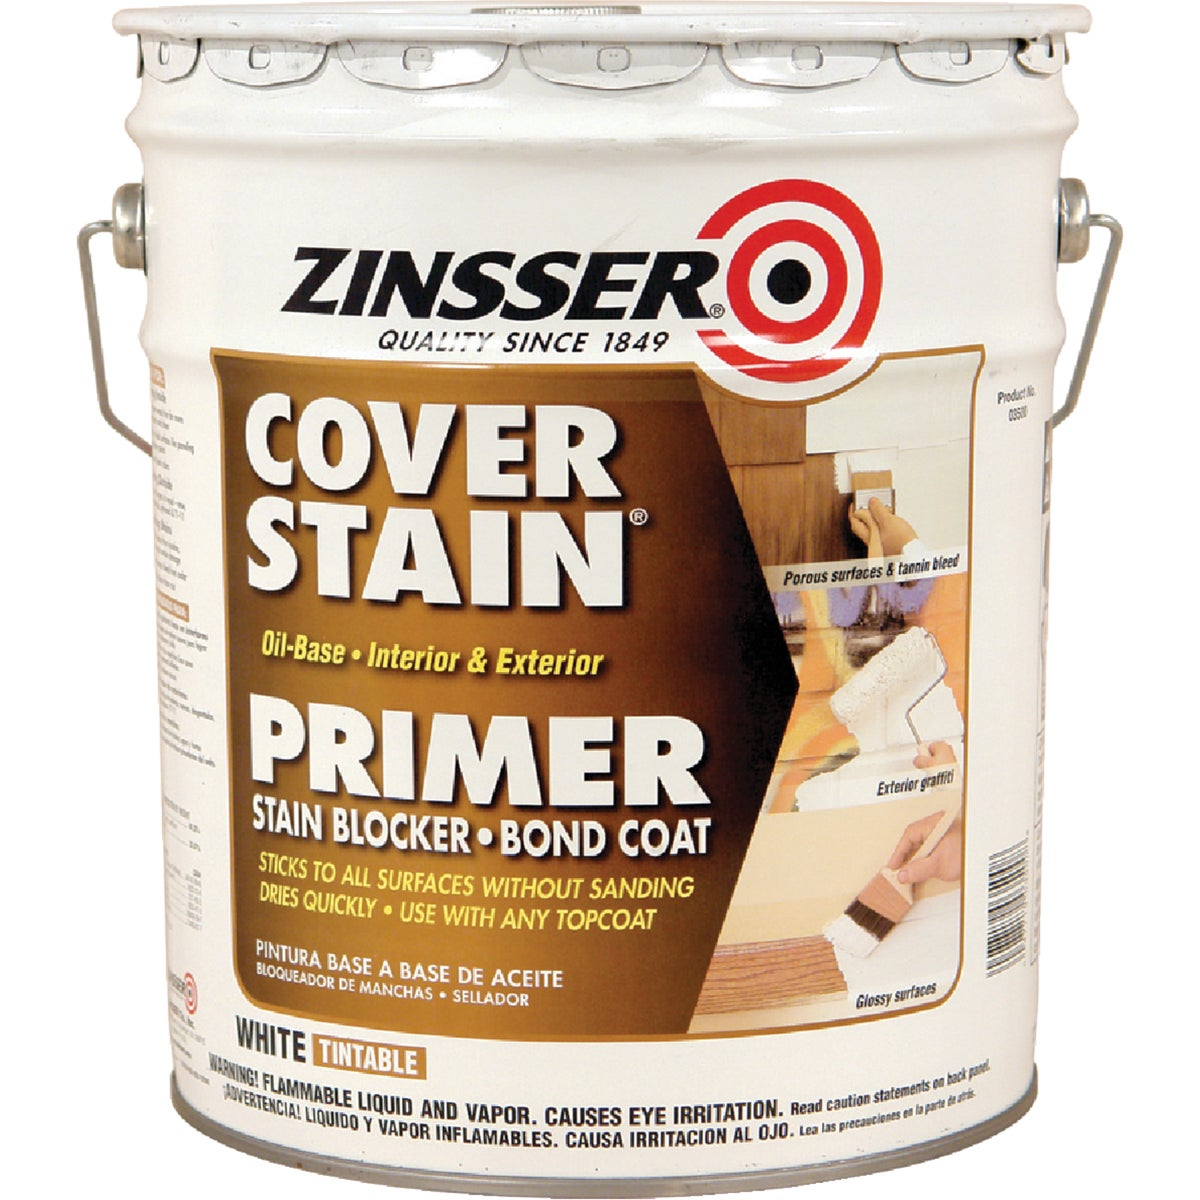 ALKYD WHT STNBLK PRIMER - 3500 by Rustoleum